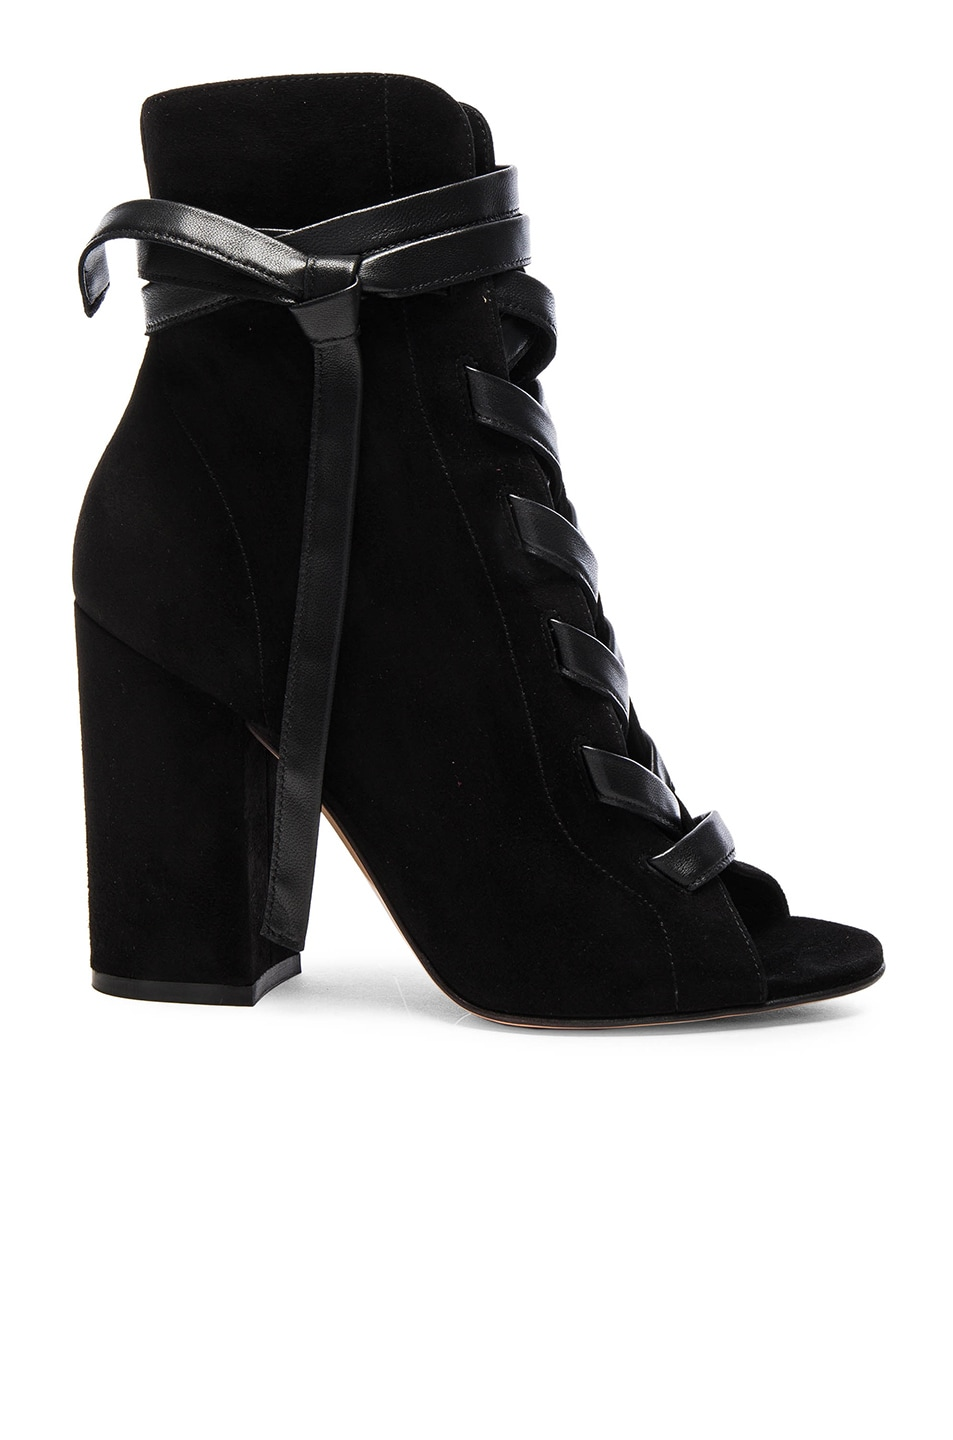 Image 1 of Gianvito Rossi Suede Lace Up Booties in Black